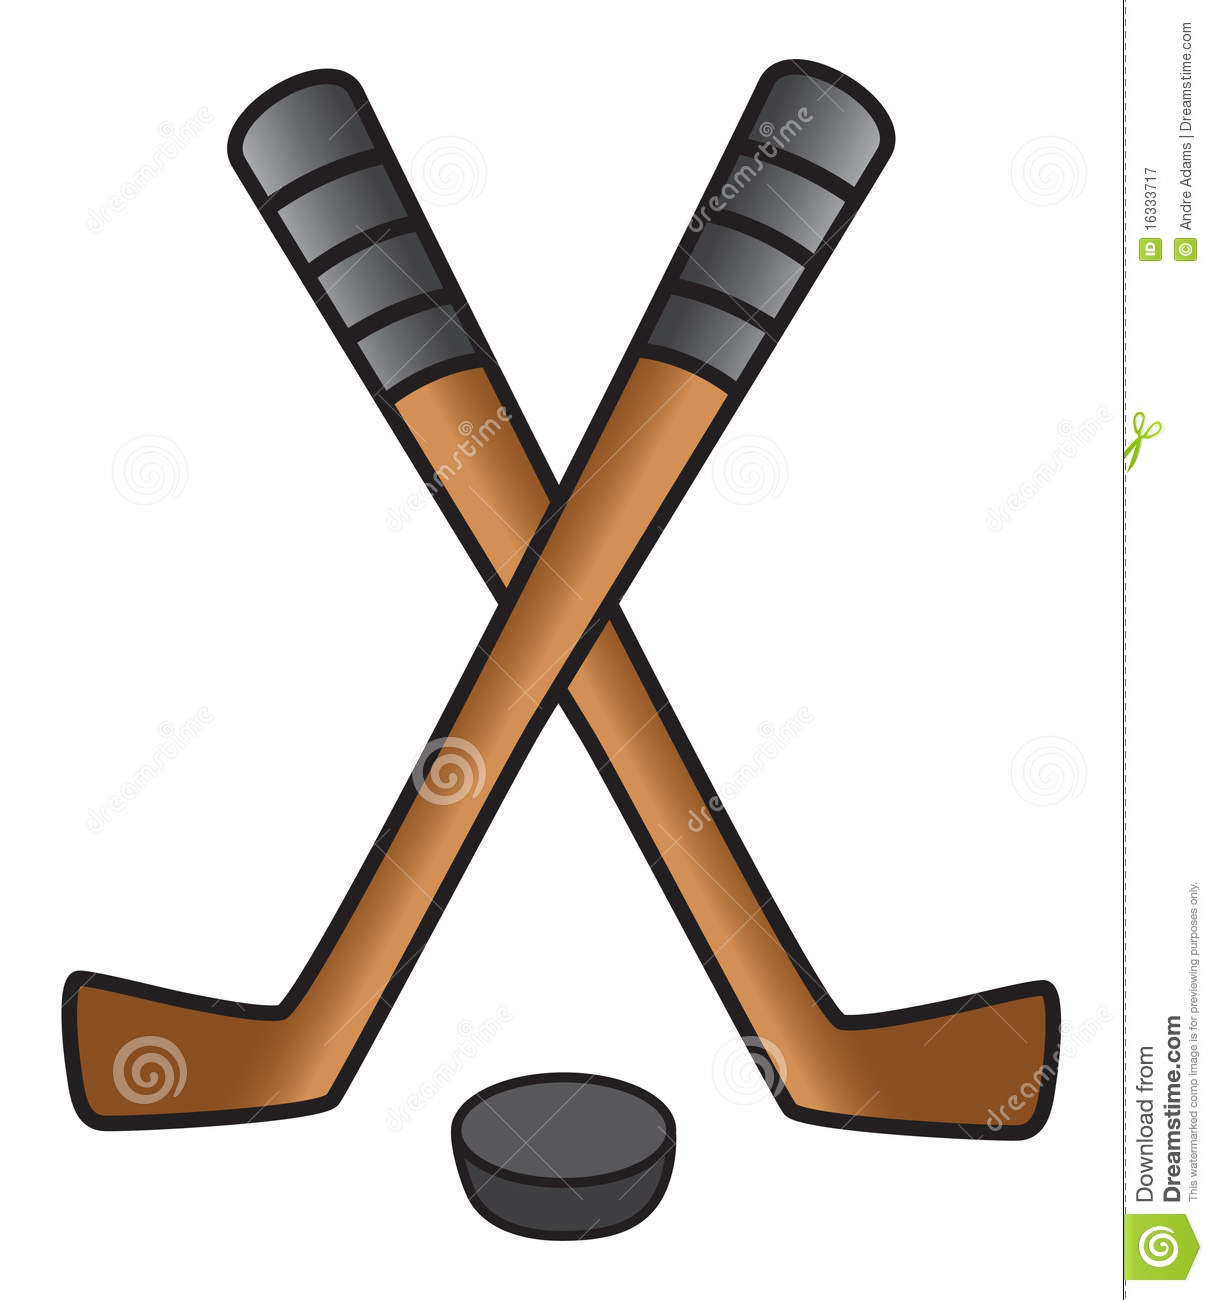 Hockey Puck And Stick Clipart Images & Pictures - Becuo